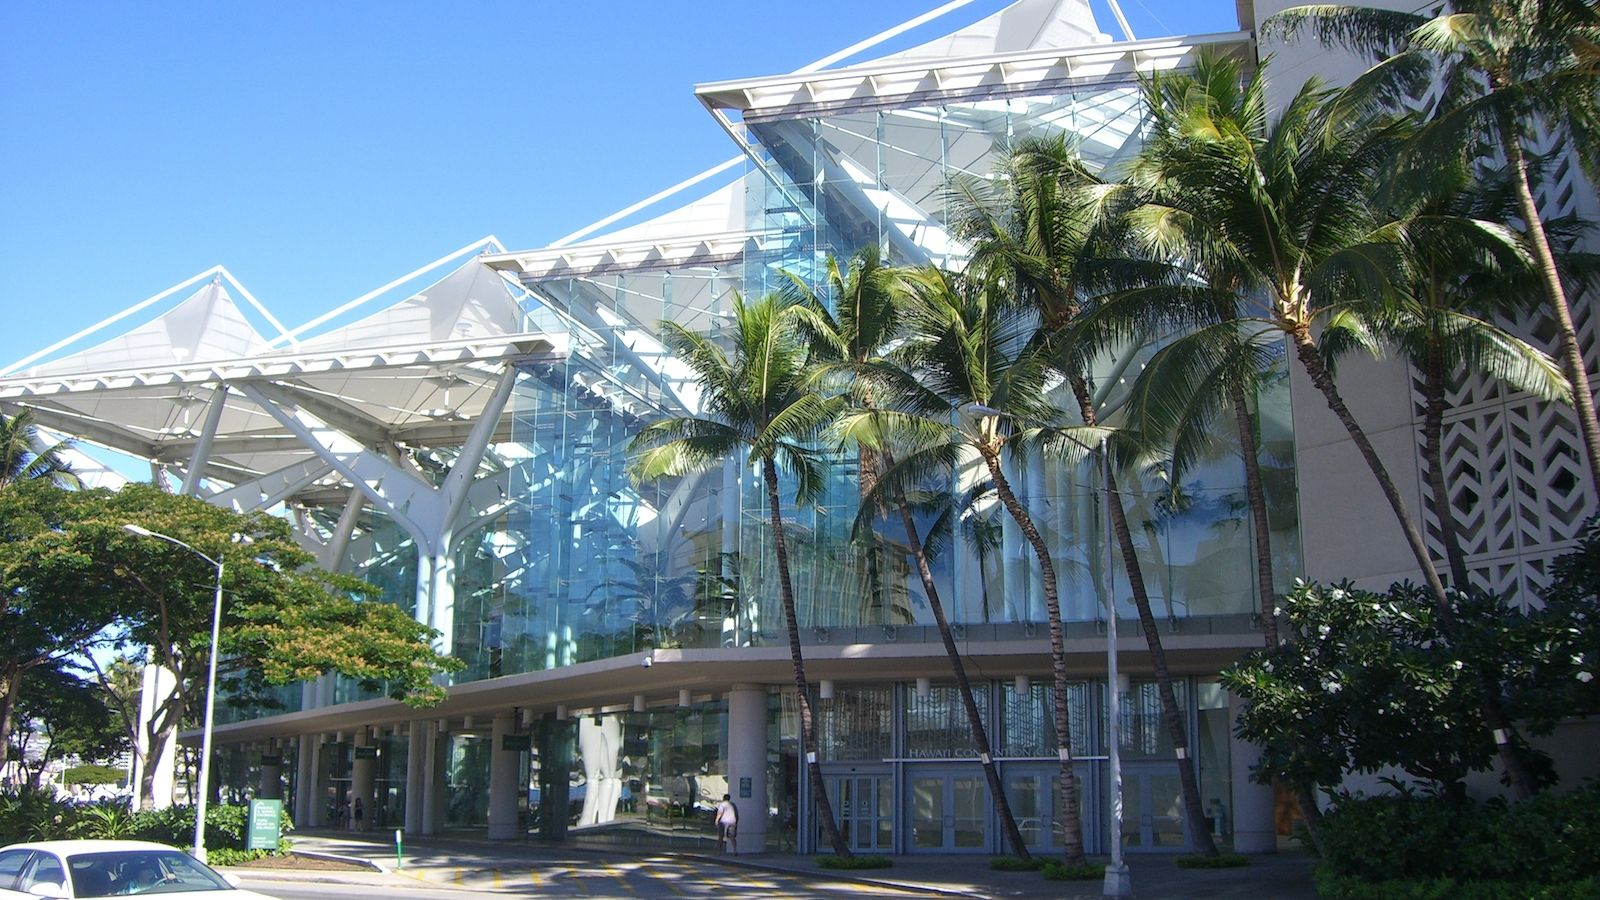 Sheraton Princess Kaiulani - Hawaii Convention Center